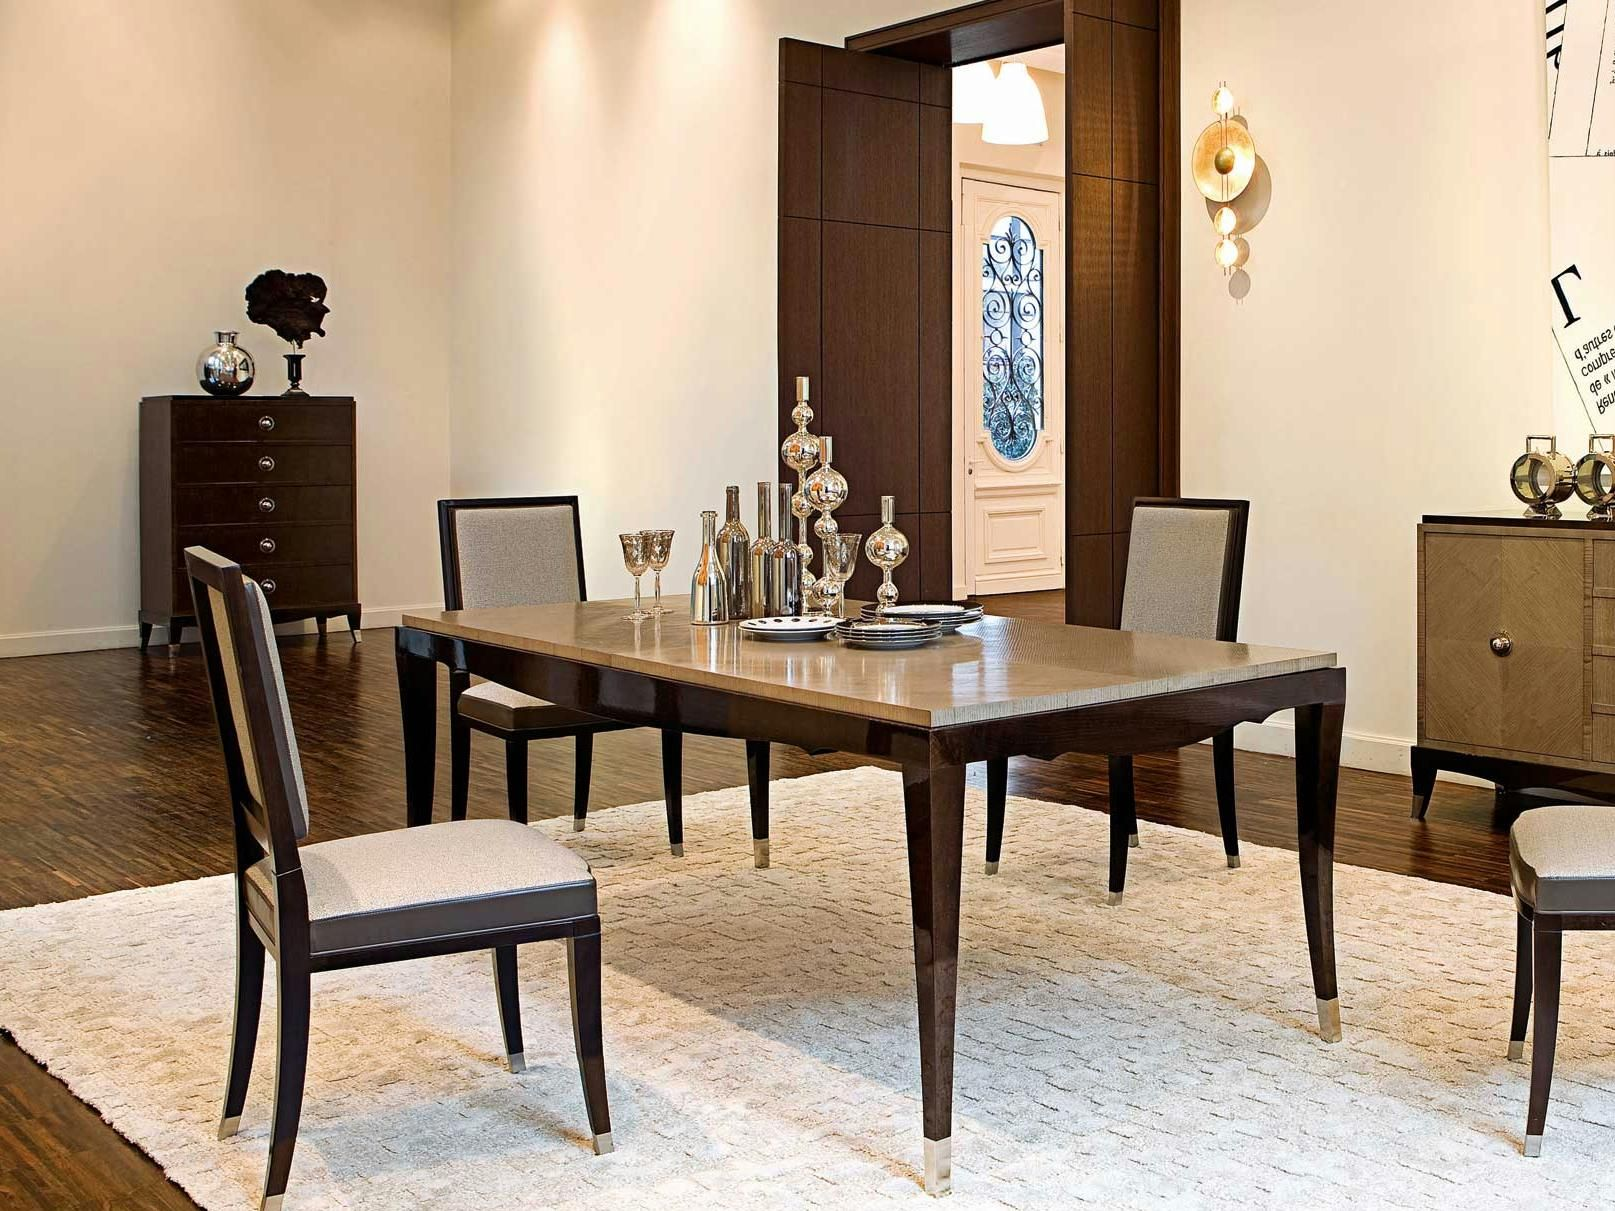 Winsome Beige Dining Room Rug Decoration Dining Table Set As Well Drawer Desk In The Nearby And Hardwood Flooring Dining Room Rug Decoration Smart Tips And Tr #standard #rug #size #for #living #room